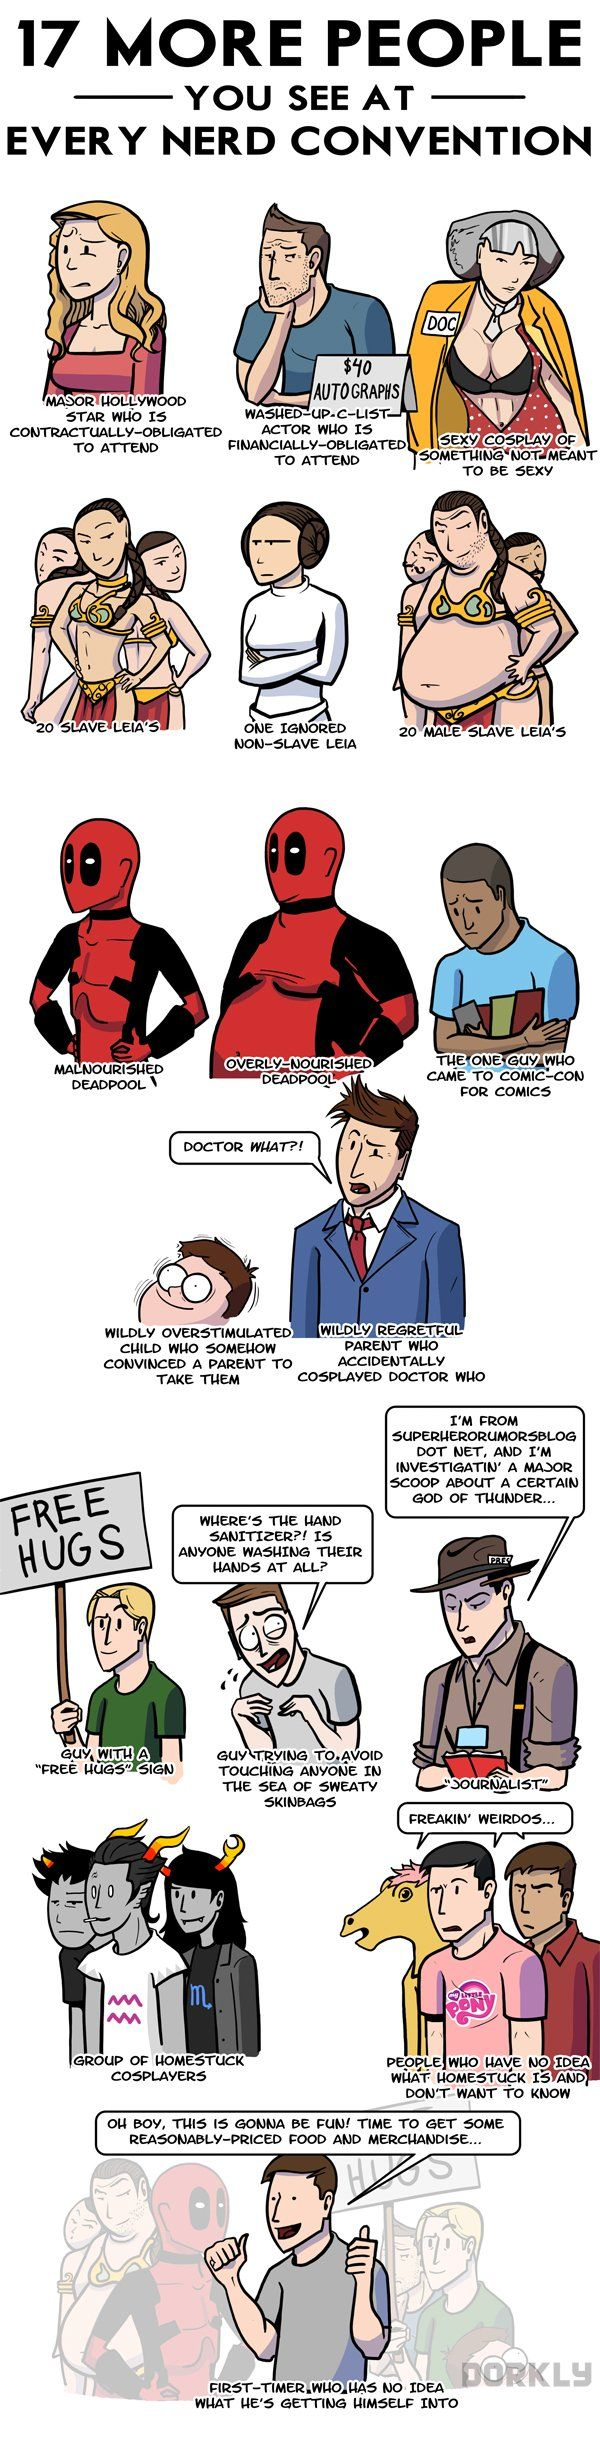 17 More People You See At Every Nerd Convention. I just went to a convention, read this, and realized it was all true